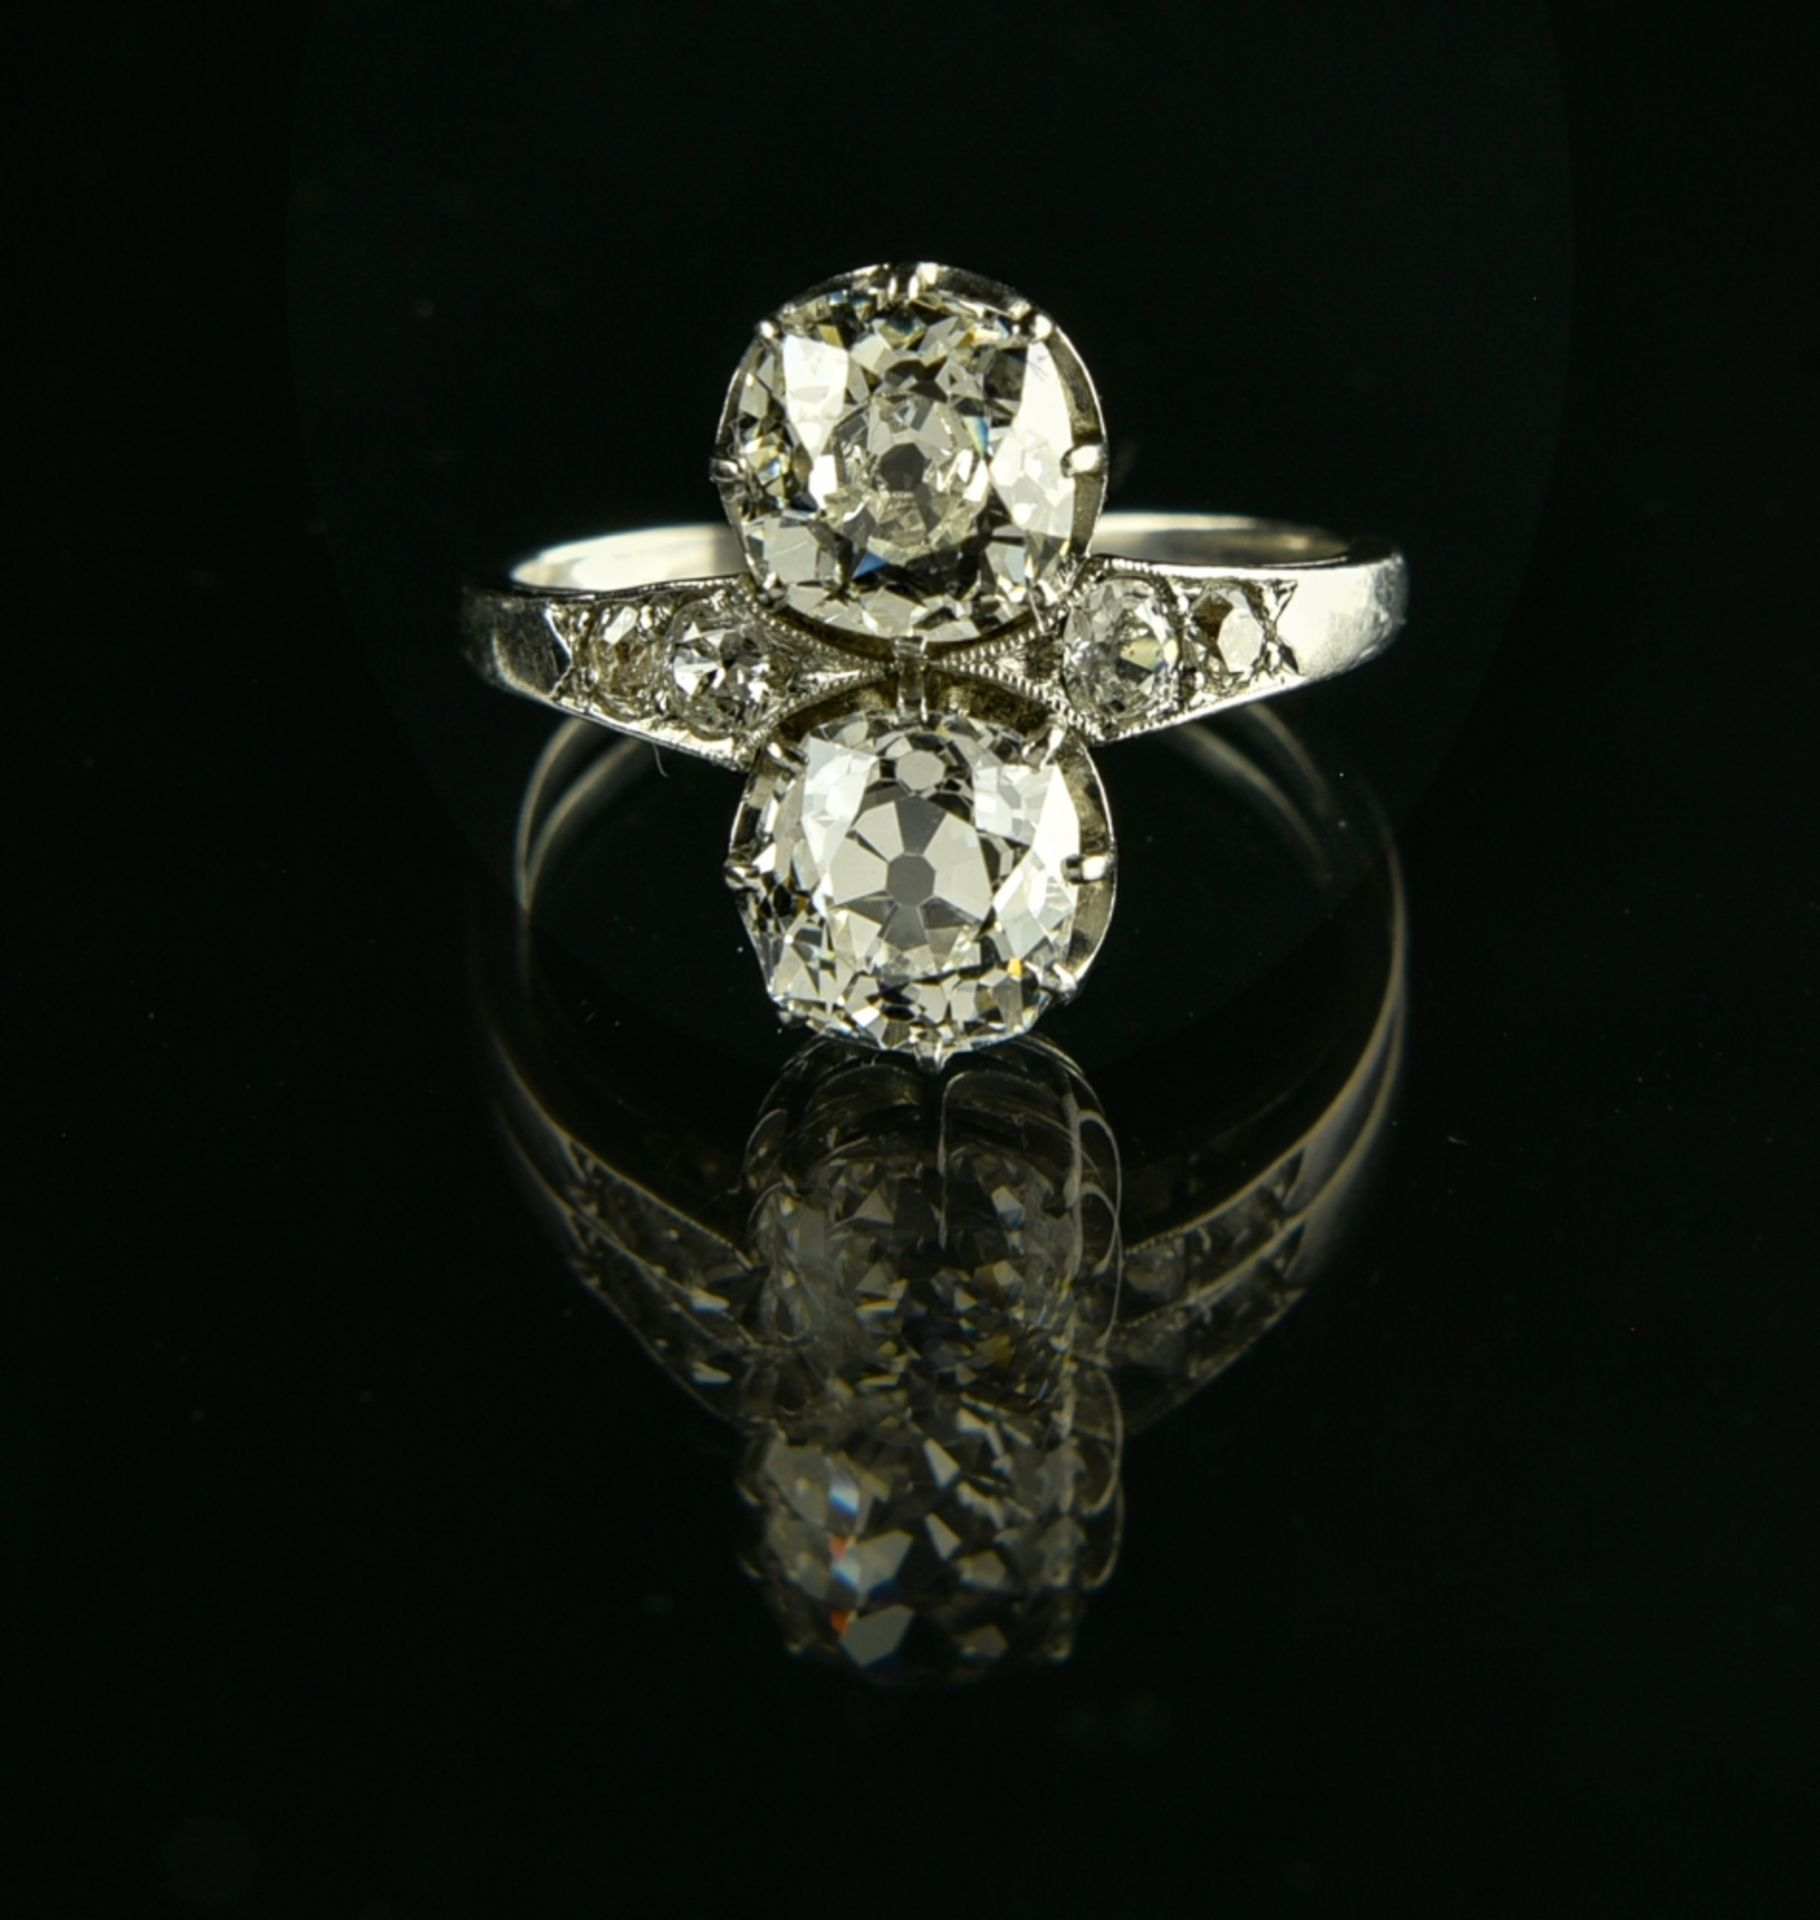 You & Me ring Platinum, set with two antique-cut diamonds of approx. 1.40 and 1.30 ct, flanked by